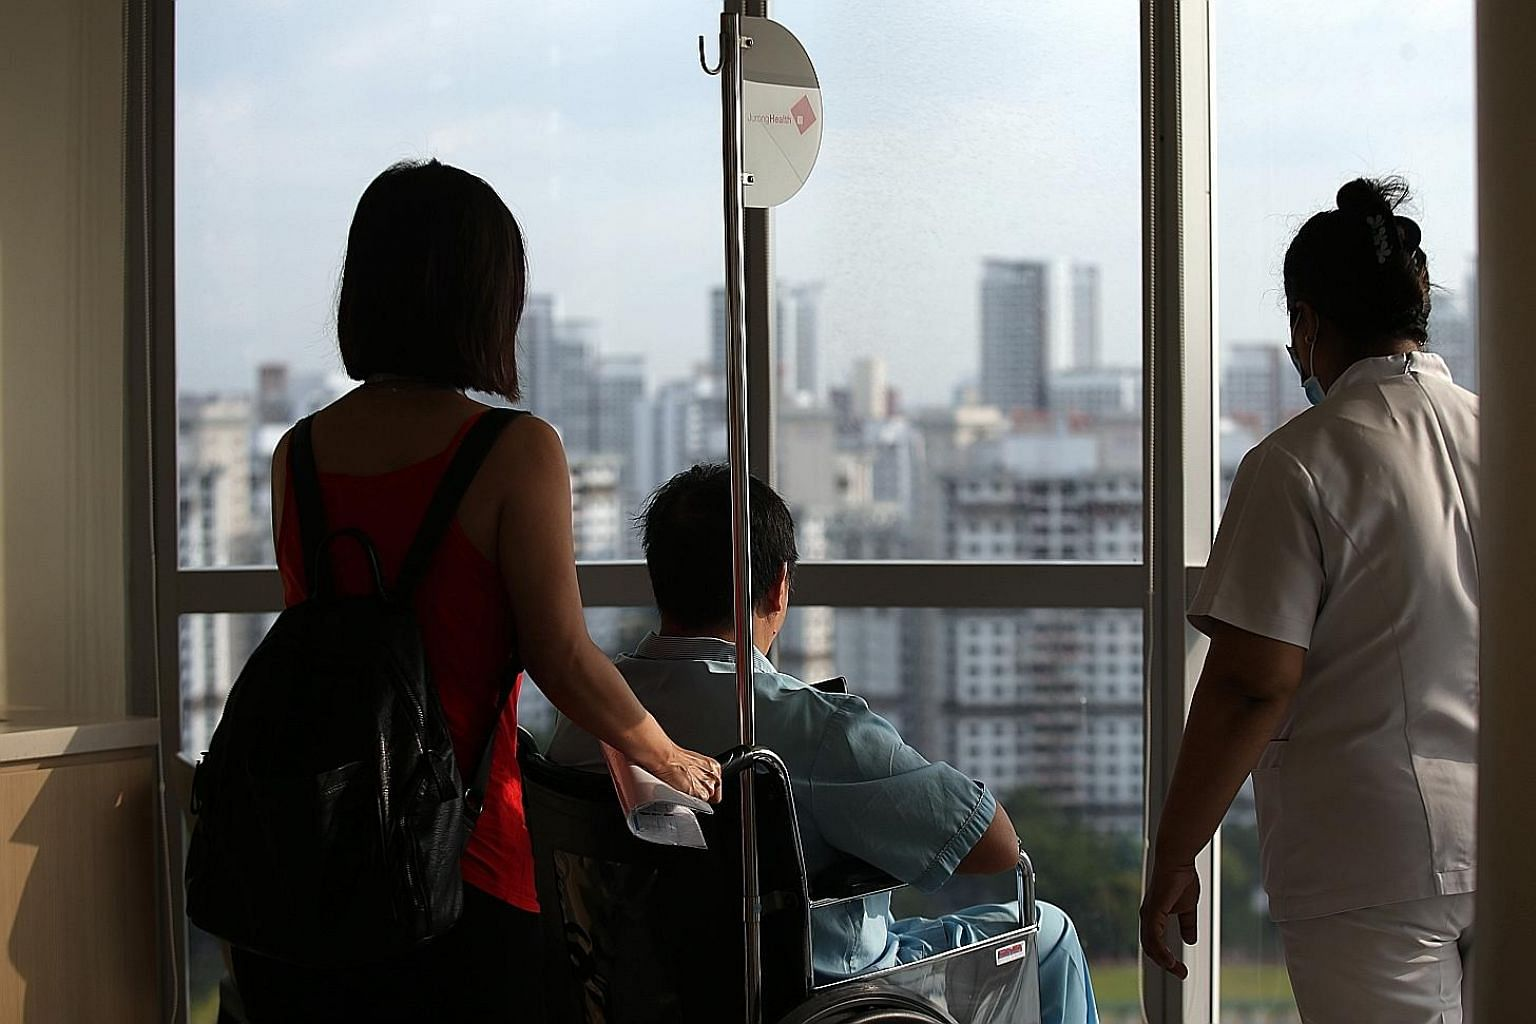 We need to be ruthless as a country in ensuring Singaporeans get the best value for their healthcare dollar, says the writer, adding that MediShield Life, which has paid out an average of almost $900 million a year, should proactively engage healthca